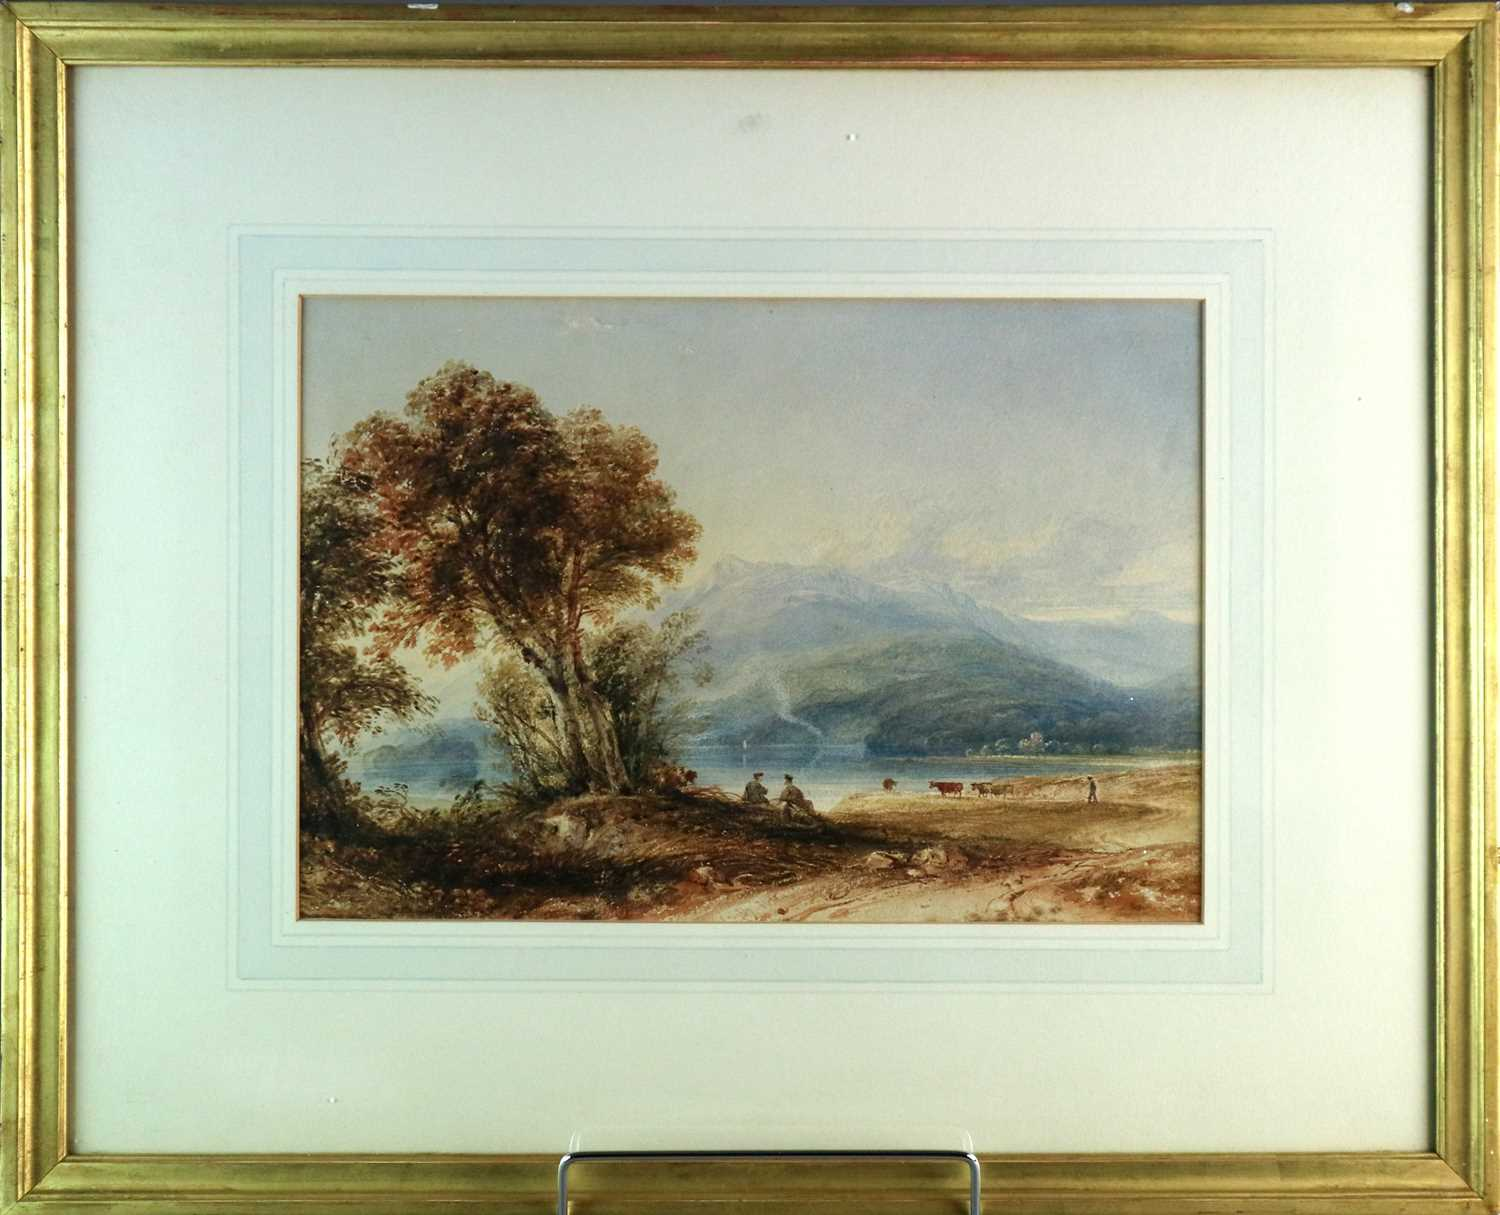 Anthony Vandyke Copley Fielding RWS (1787-1855) Two Landscapes inc. Windermere - Image 4 of 6